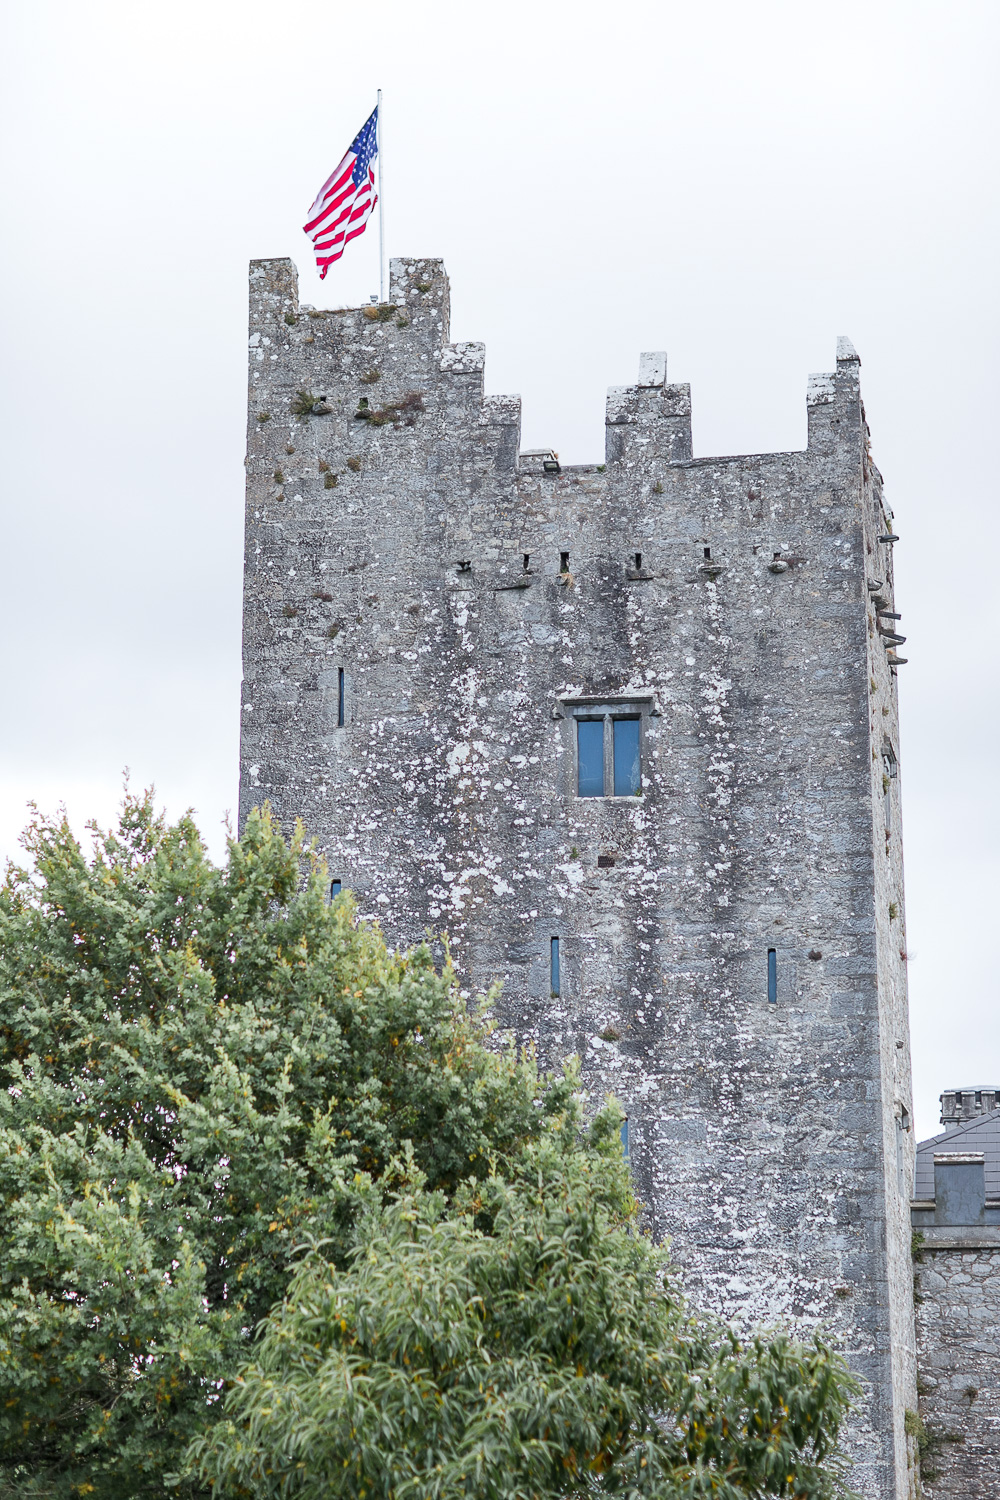 A view of the Blackwater castle showcasing the side of the tower